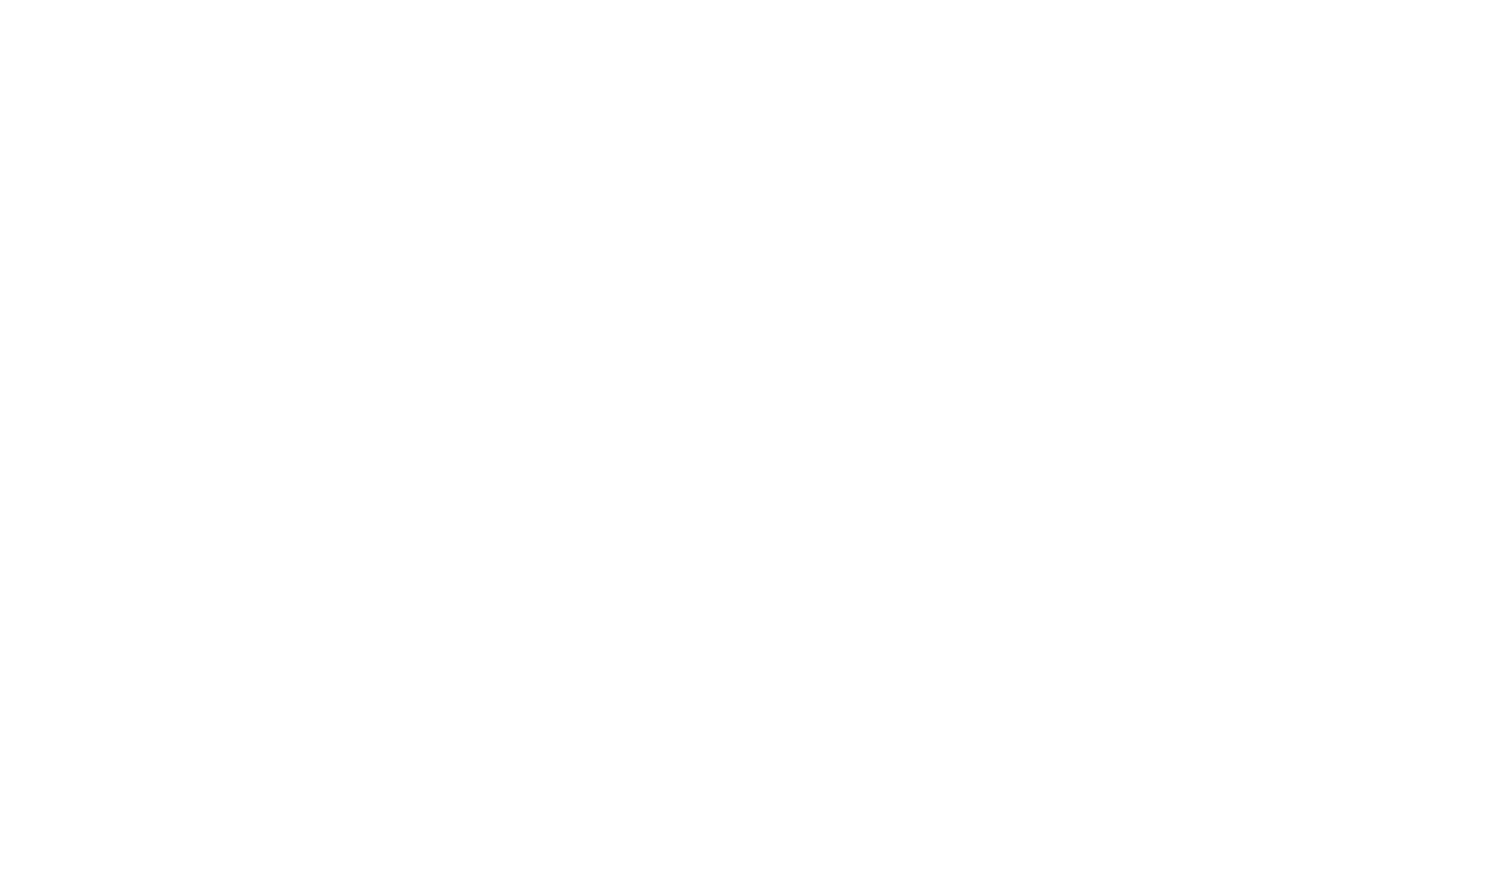 Jacqueline English Consulting